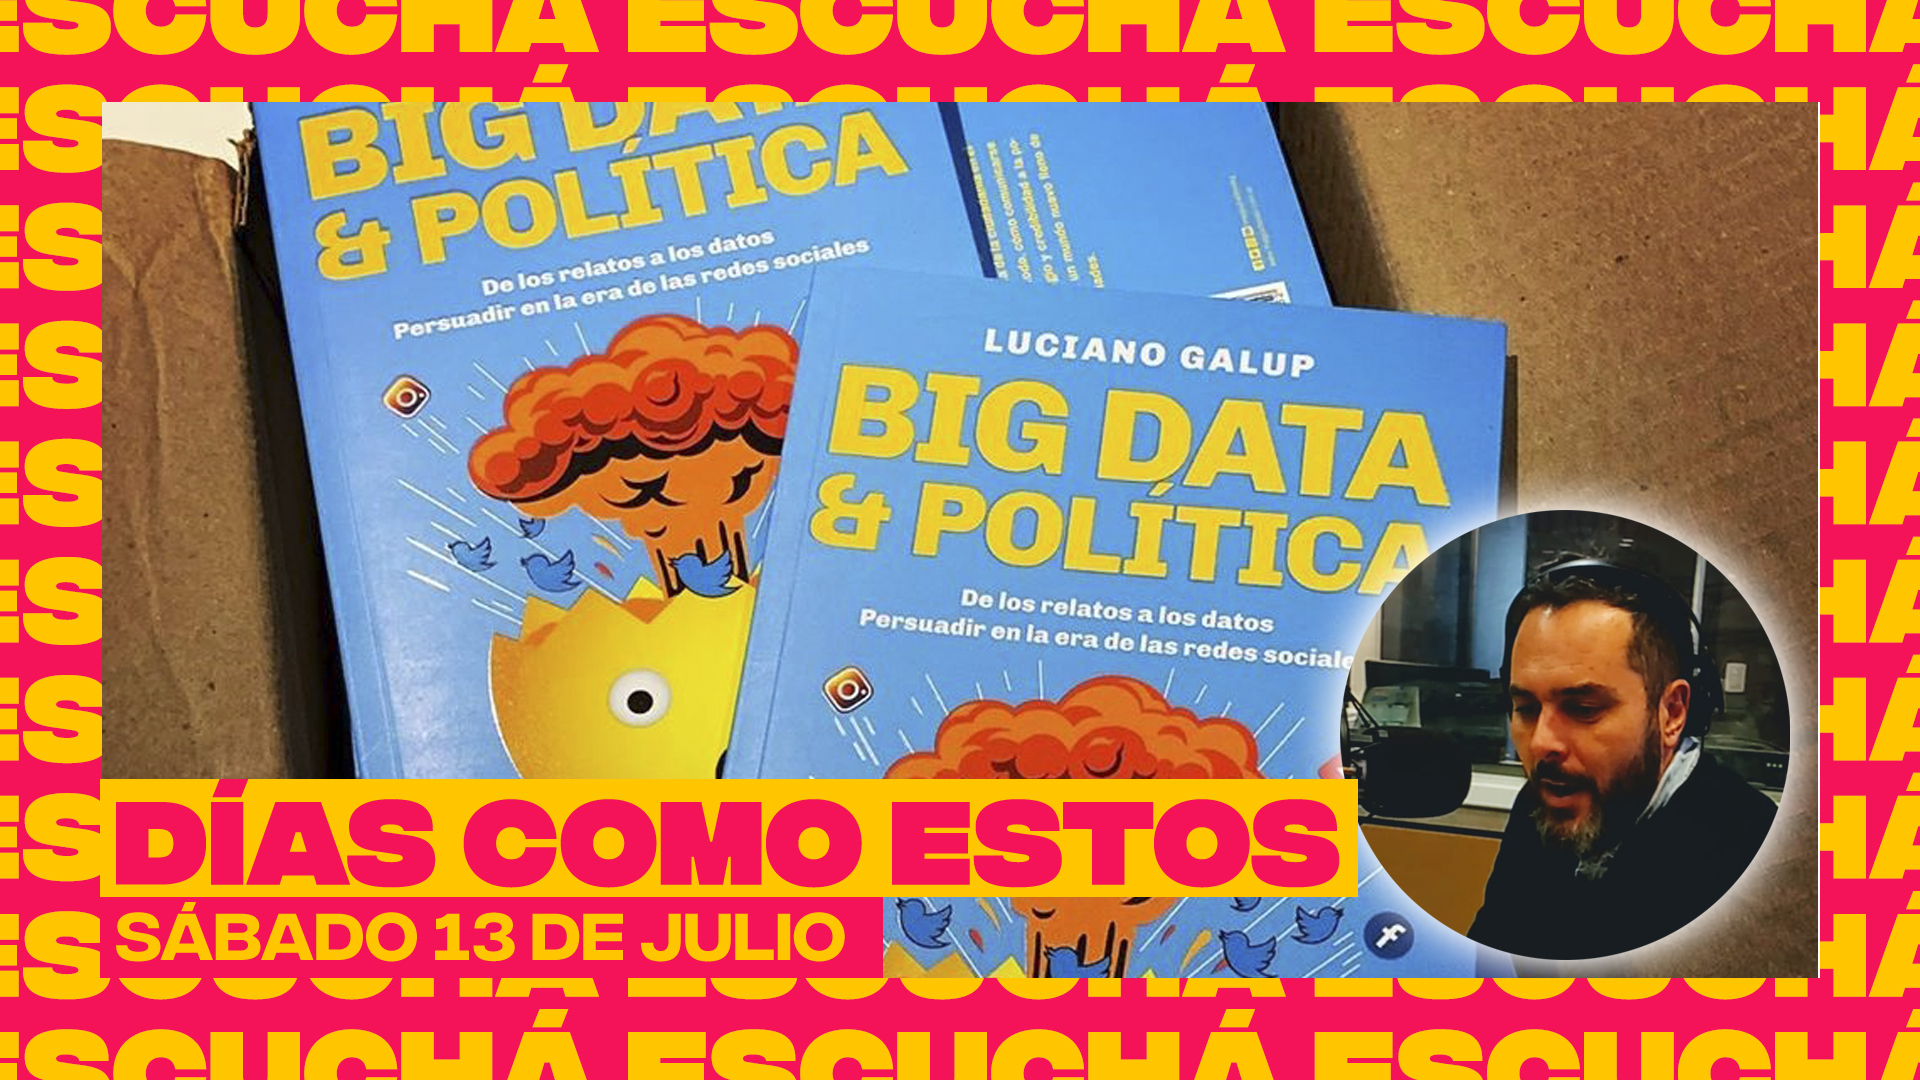 Big Data & Política con Luciano Galup